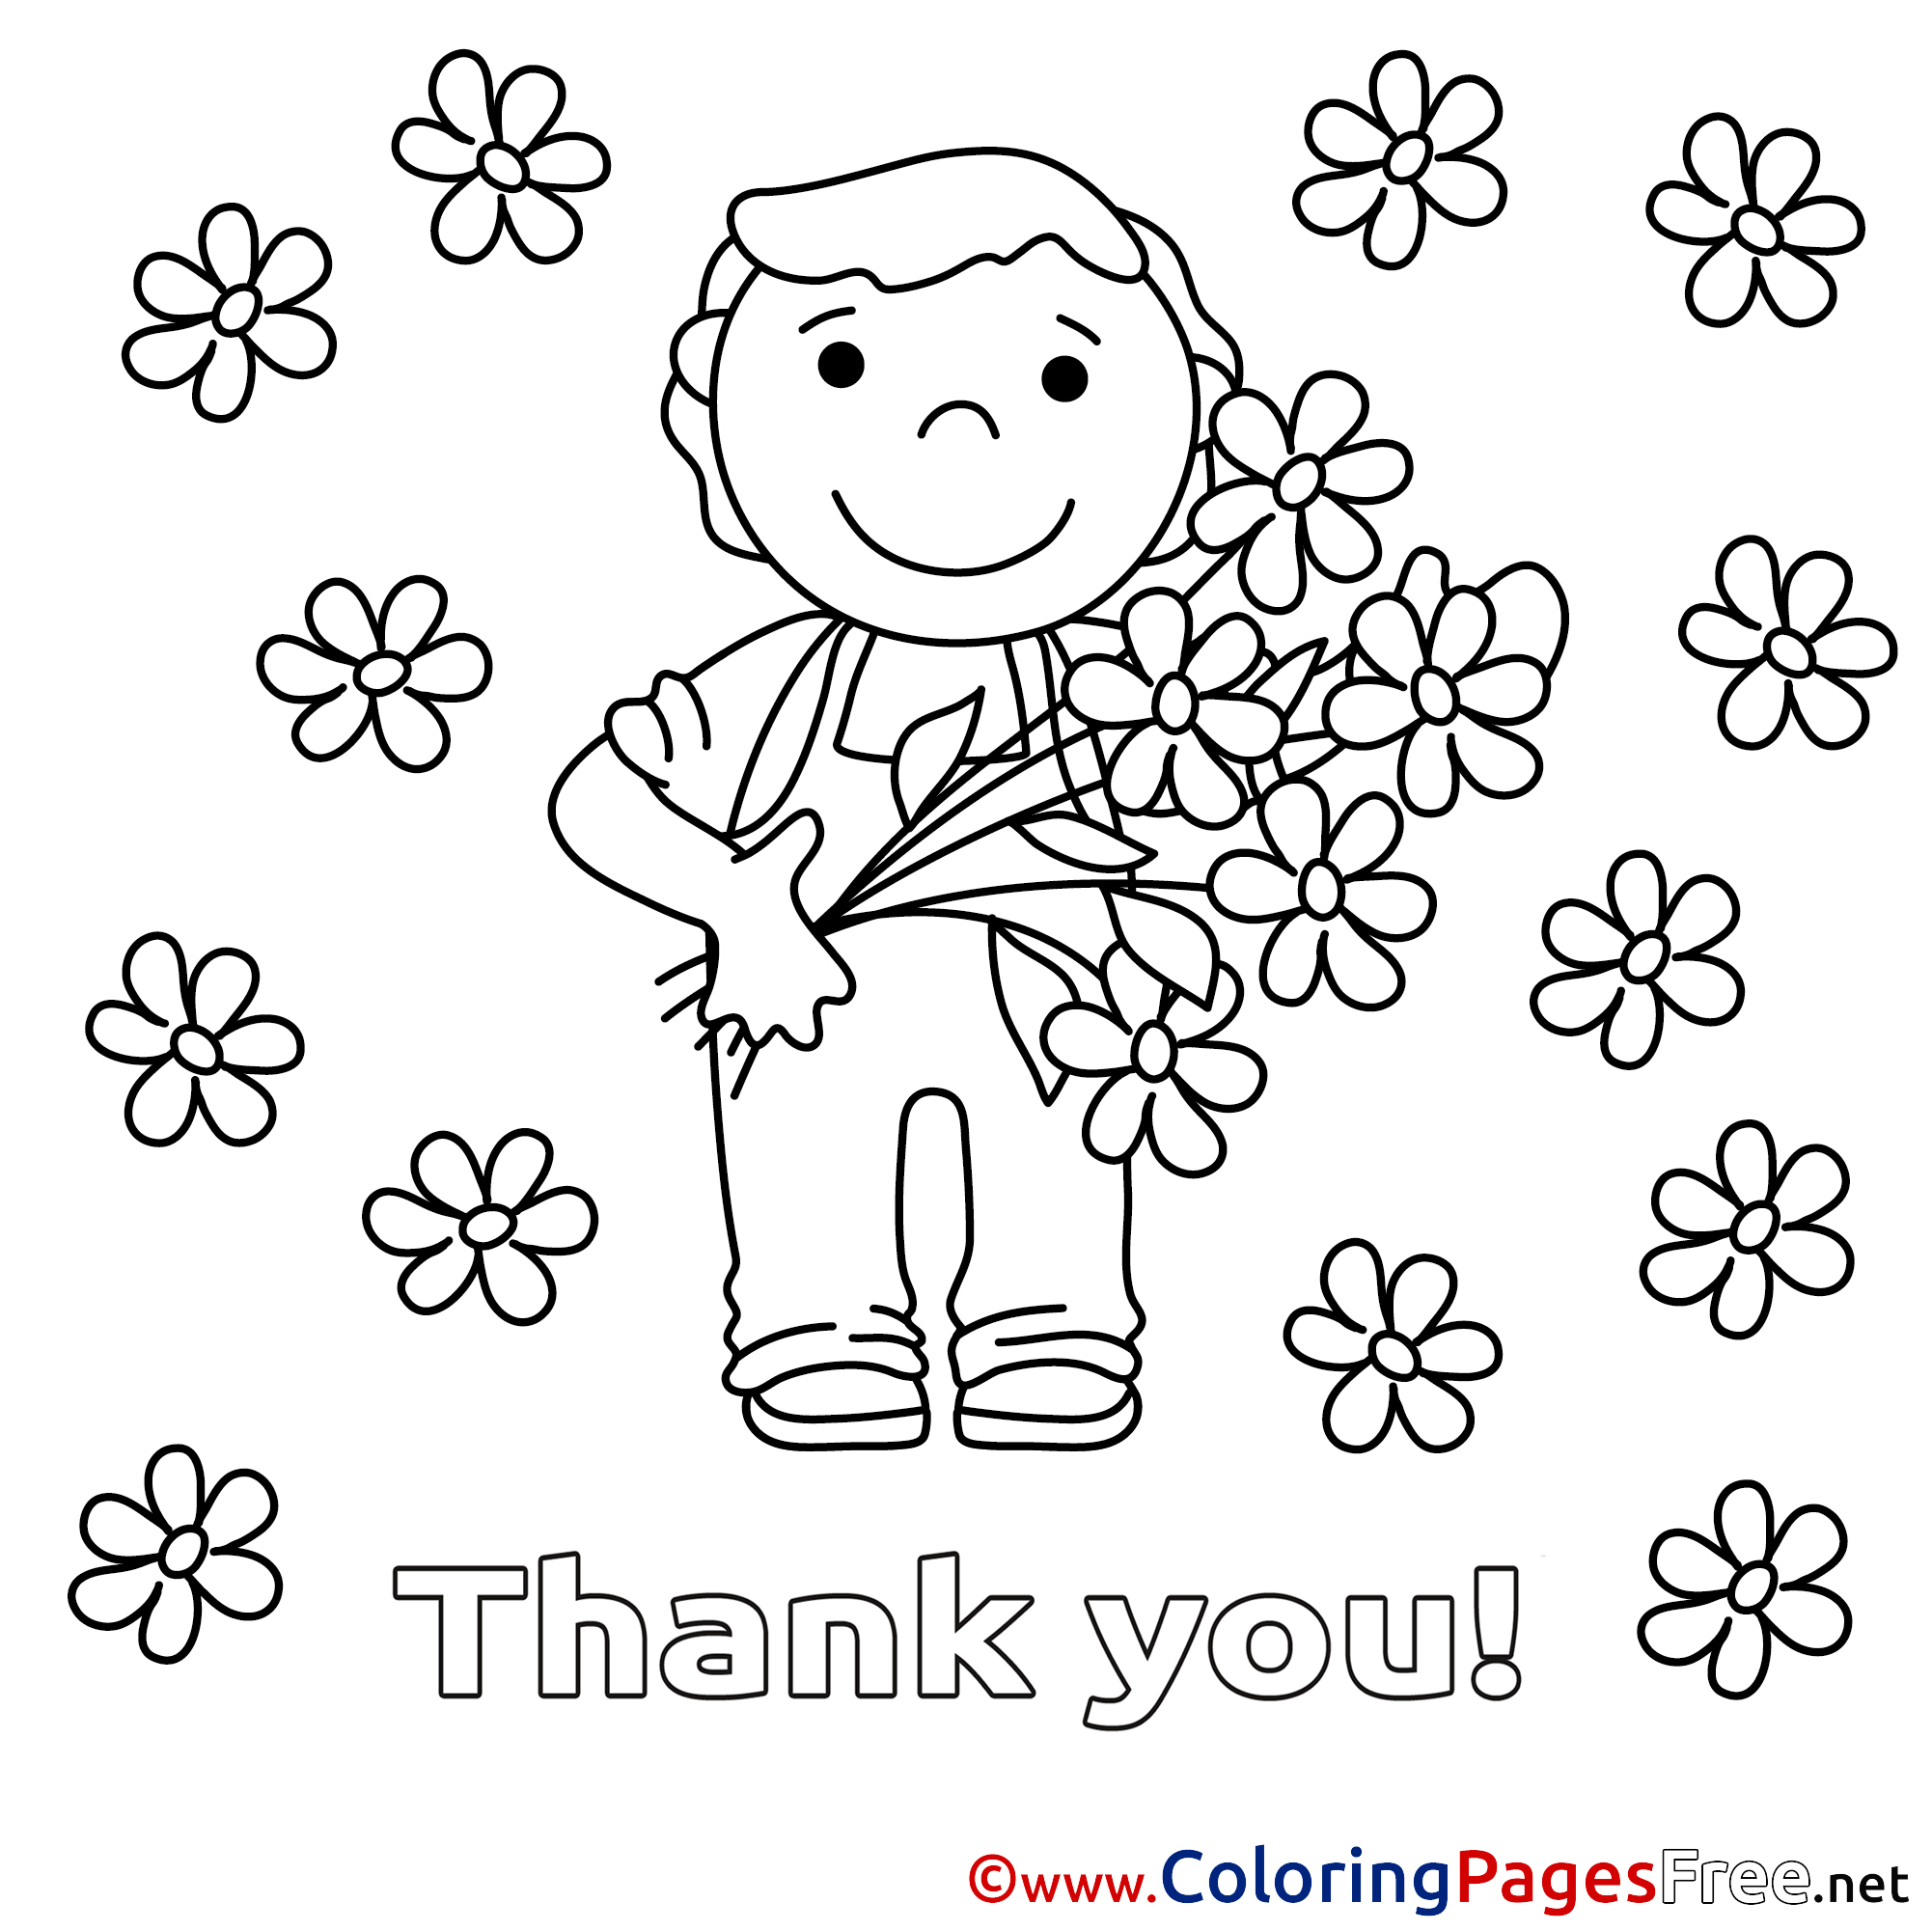 Coloring Pages That Say Thank You Coloring Pages